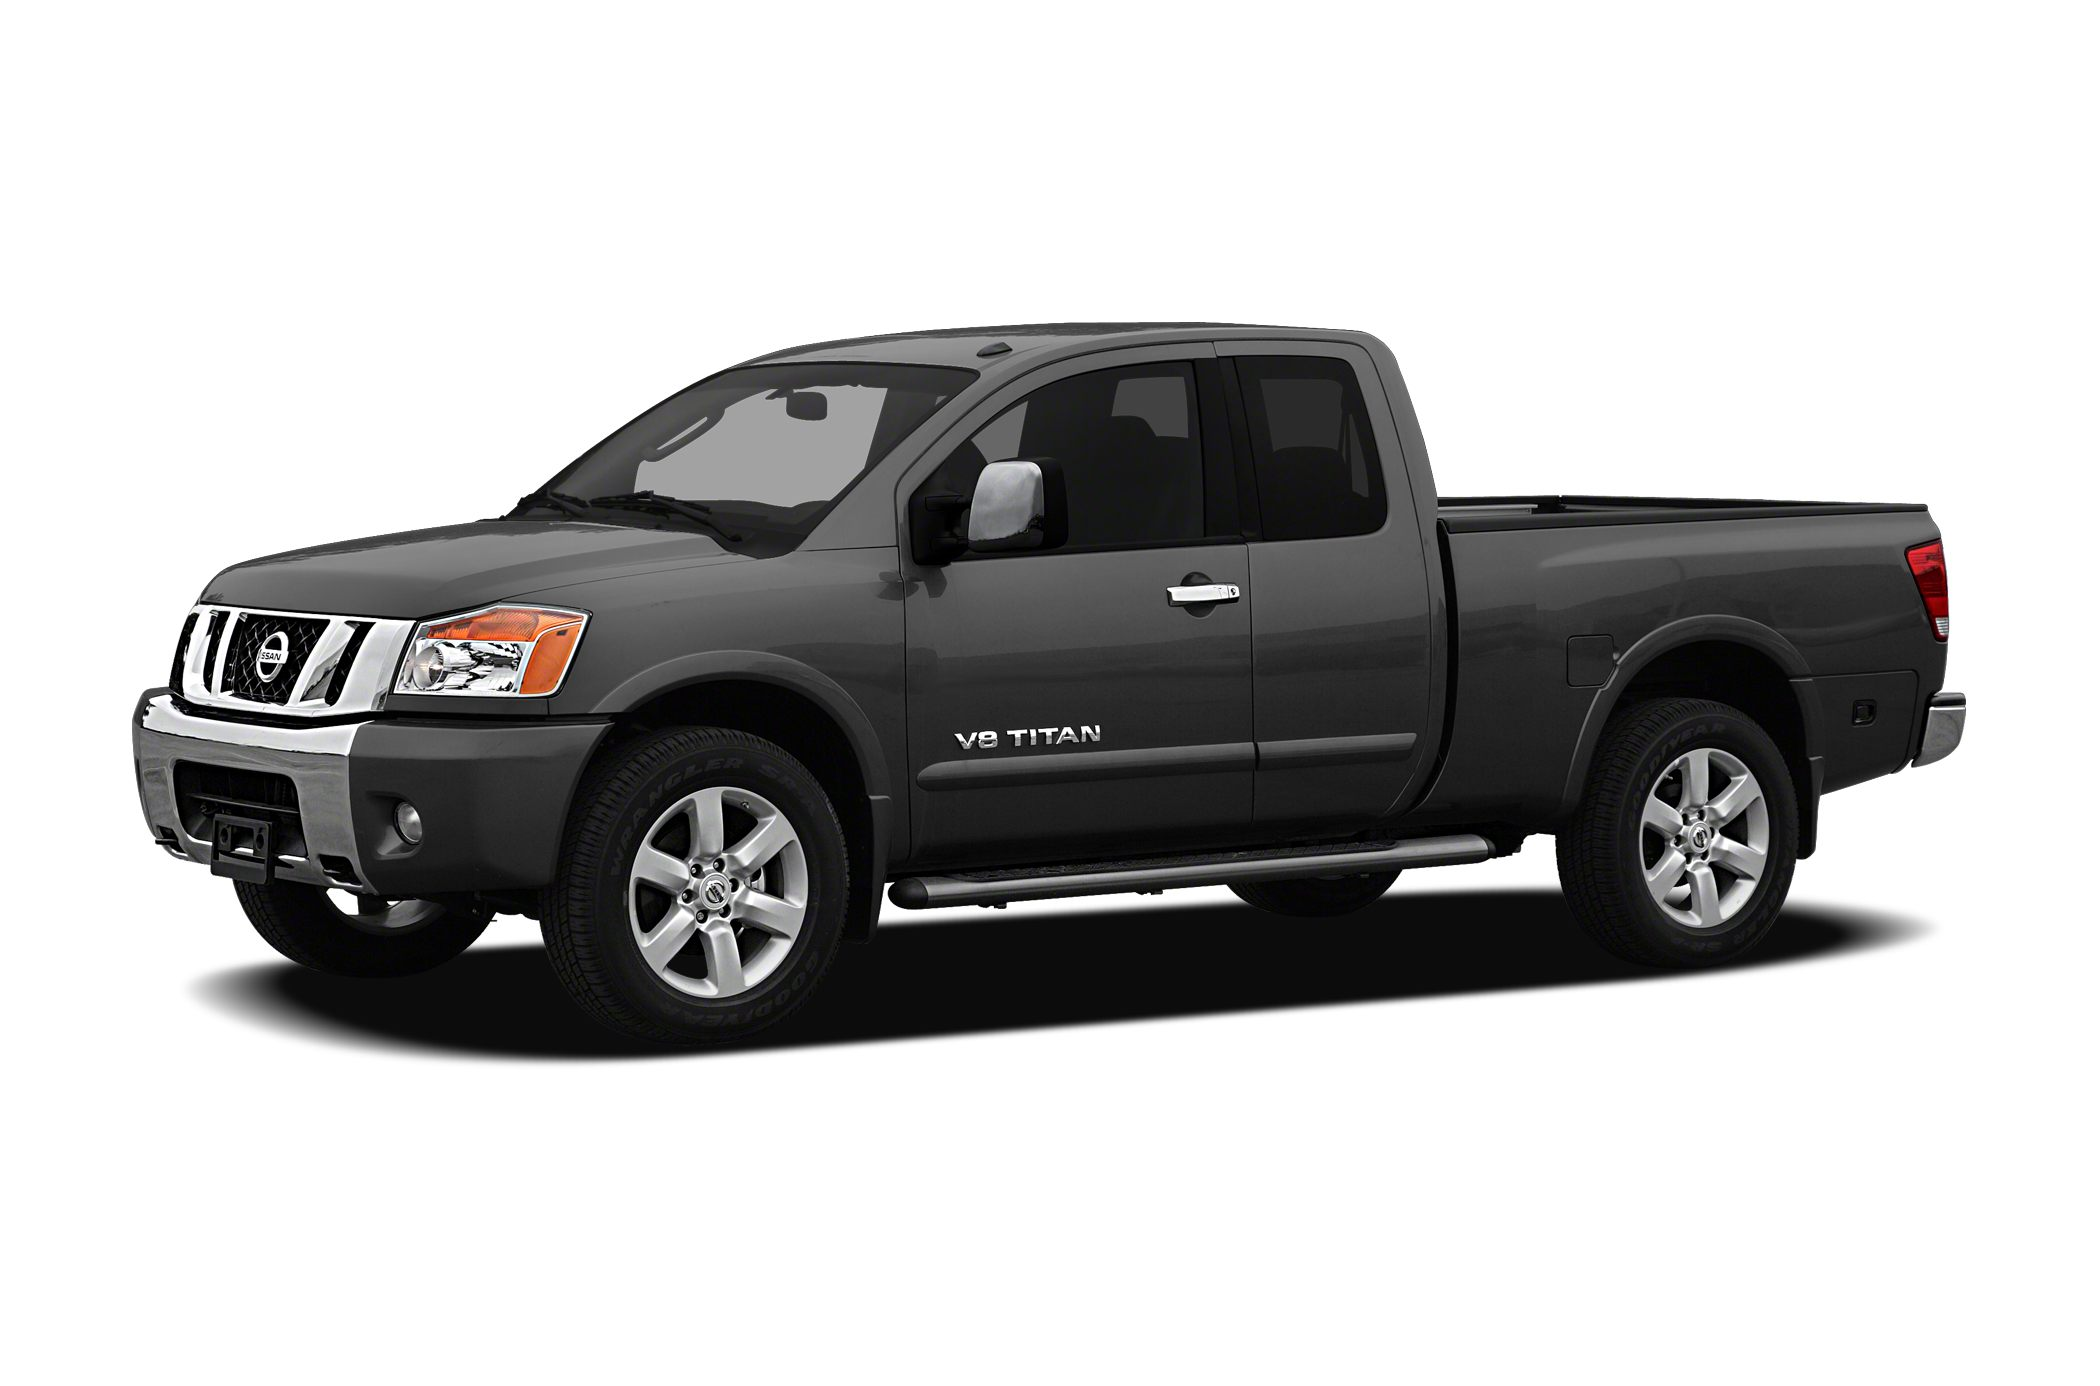 2012 Nissan Titan SV Extended Cab Pickup for sale in New Philadelphia for $19,900 with 63,209 miles